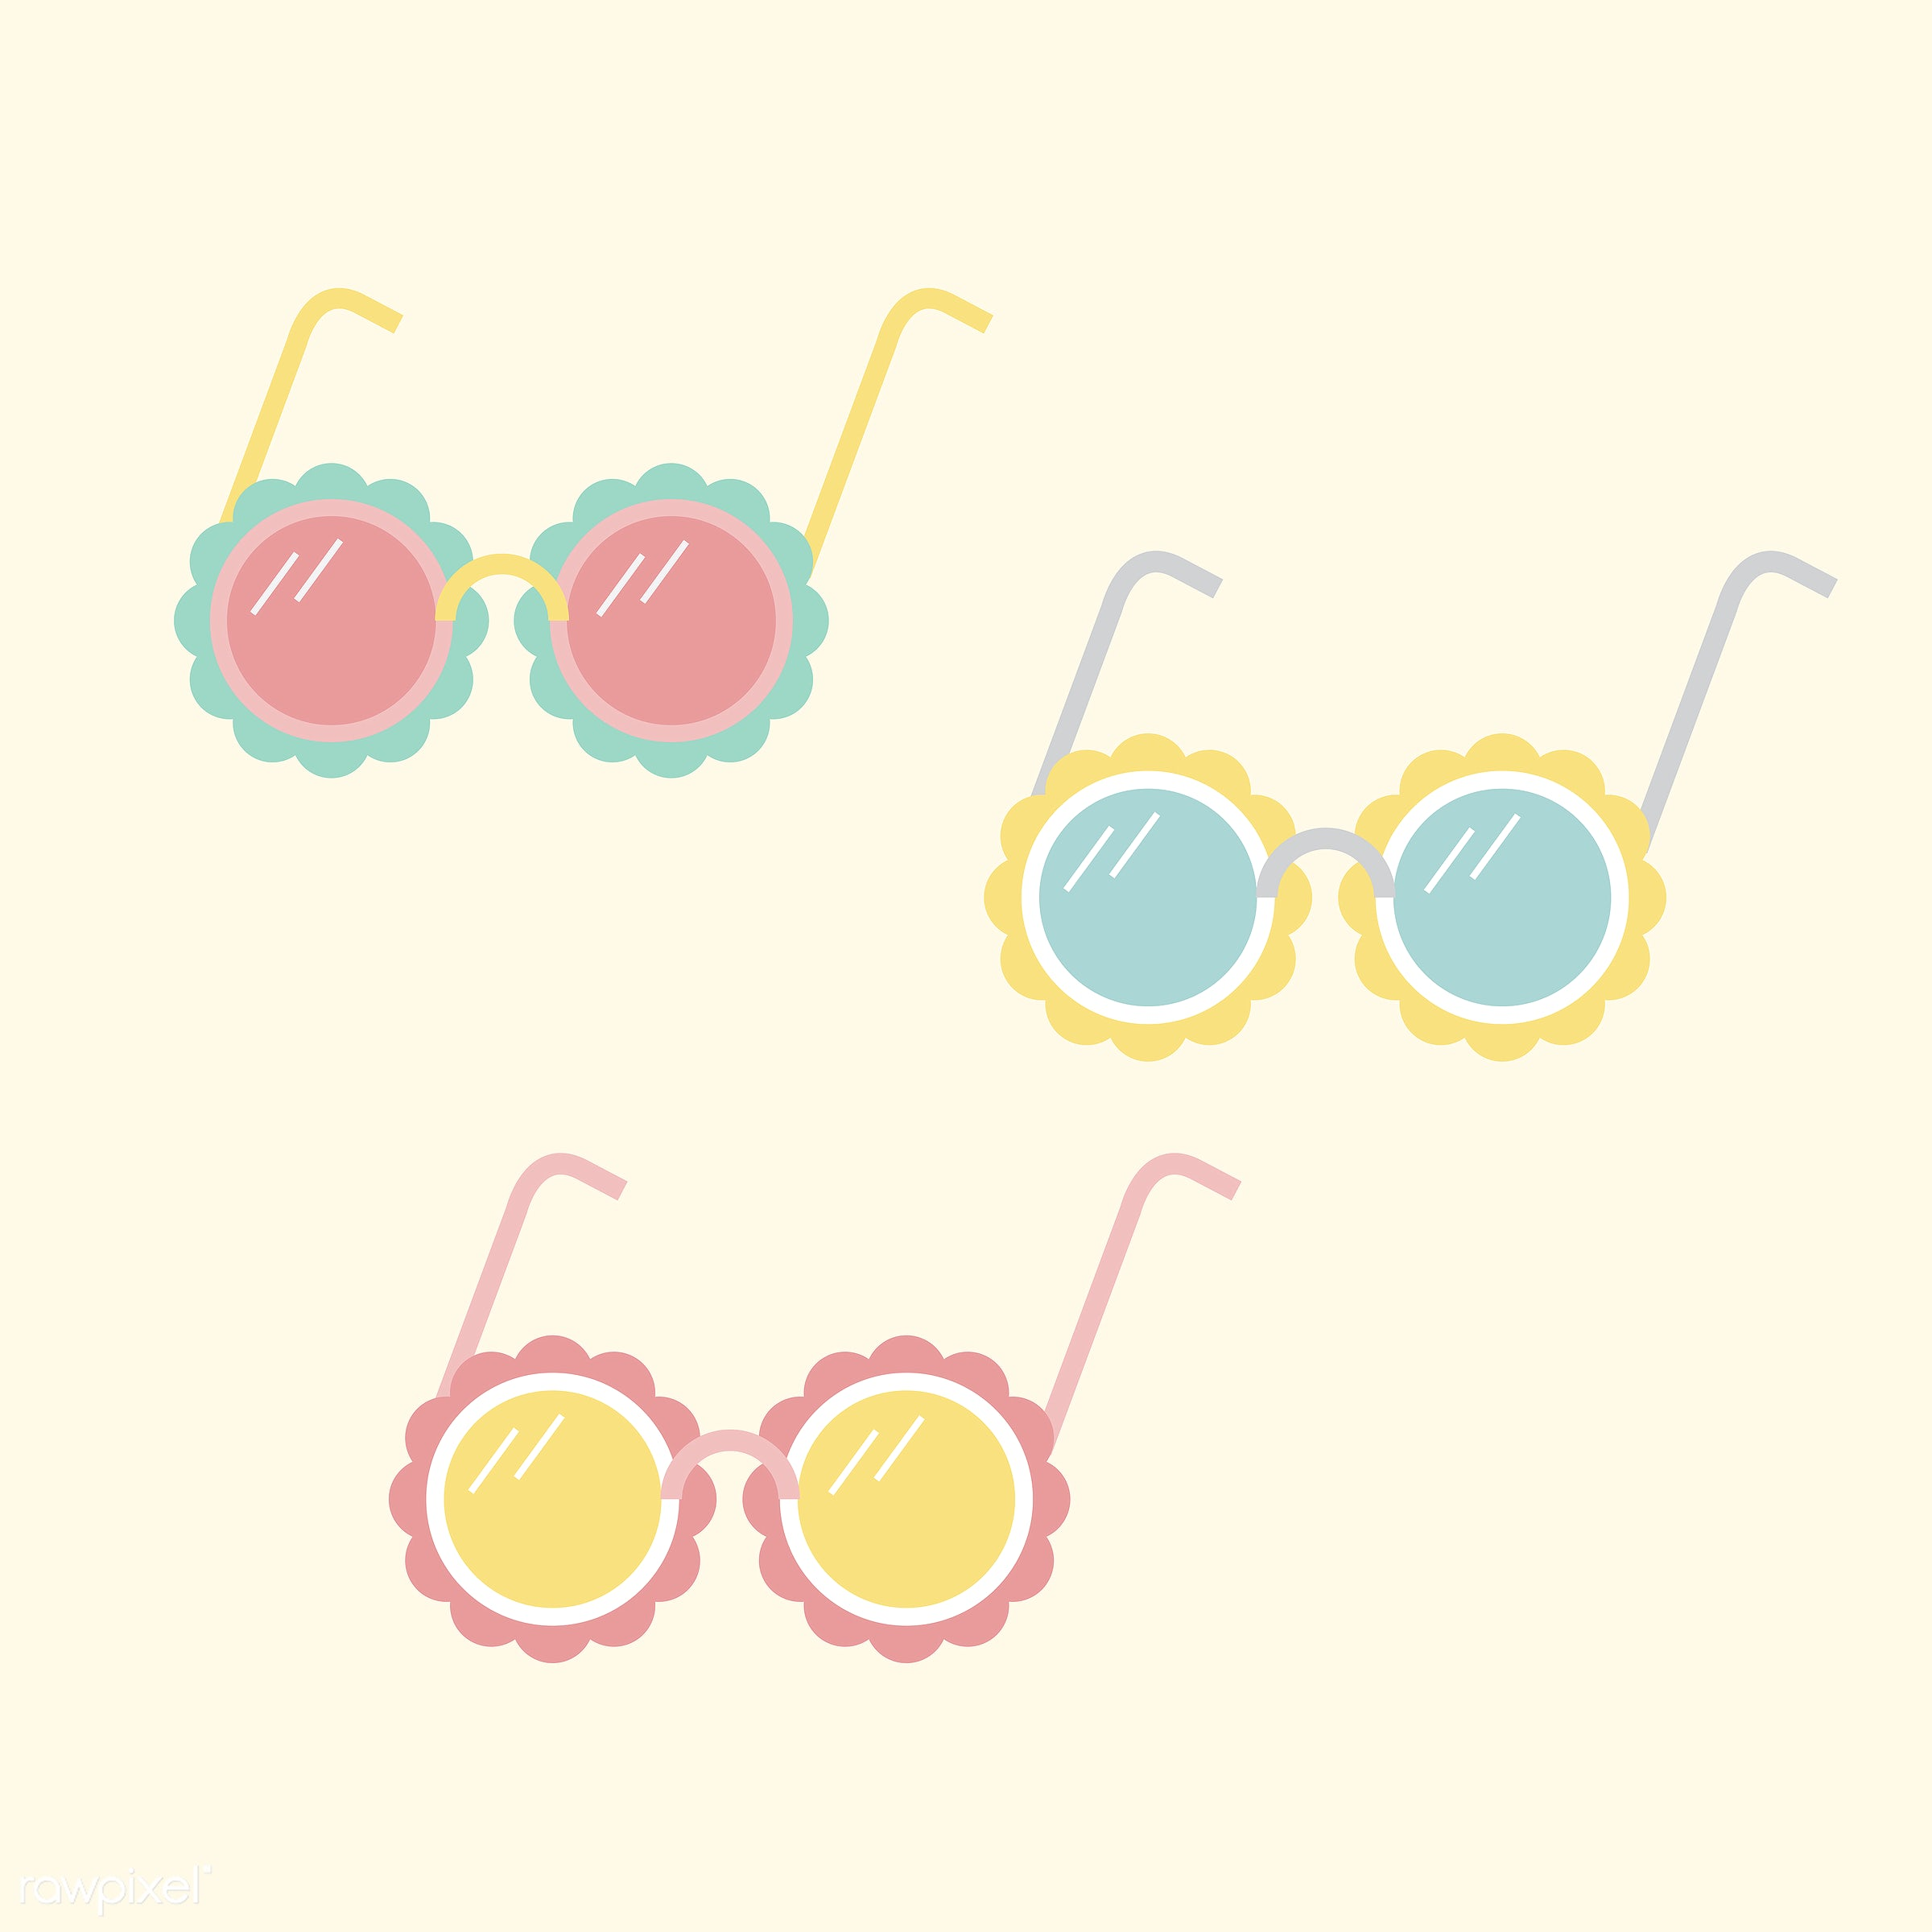 vector, illustration, graphic, cute, sweet, girly, pastel, sunglasses, glasses, isolated, pastel colored, style, summer,...